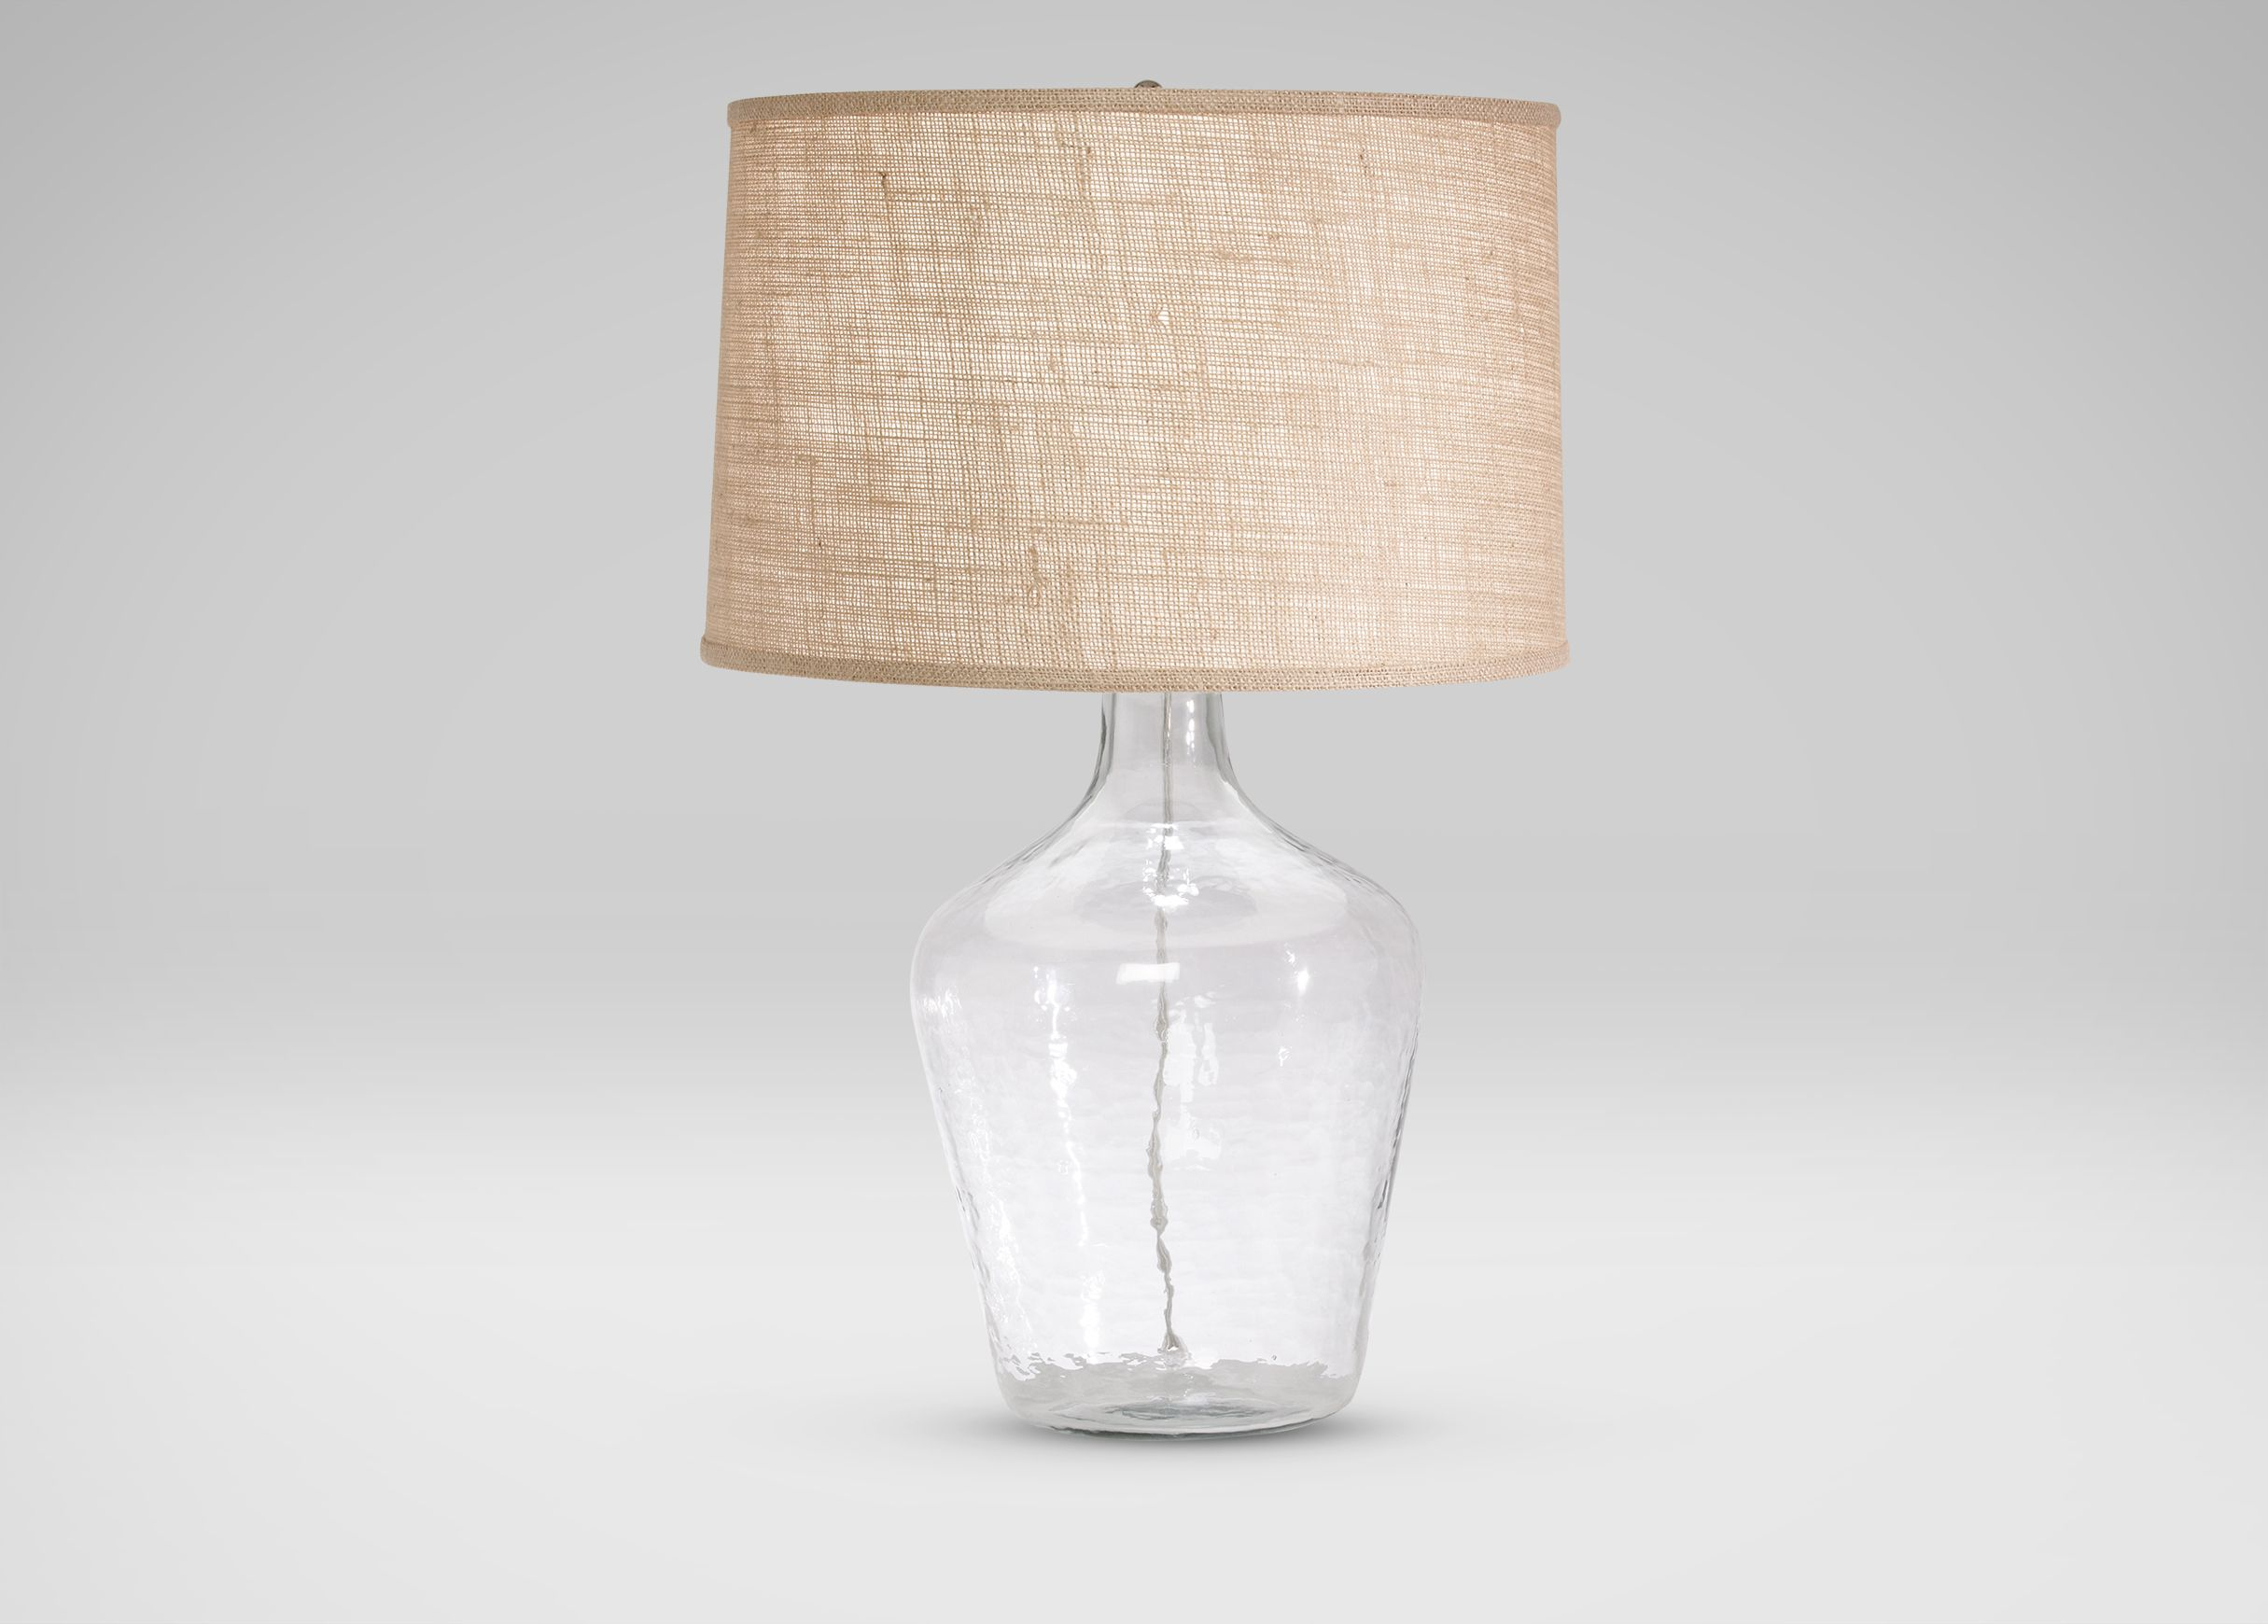 Glass Plum Jar Table Lamp Ethan Allen Abode Table Lamp